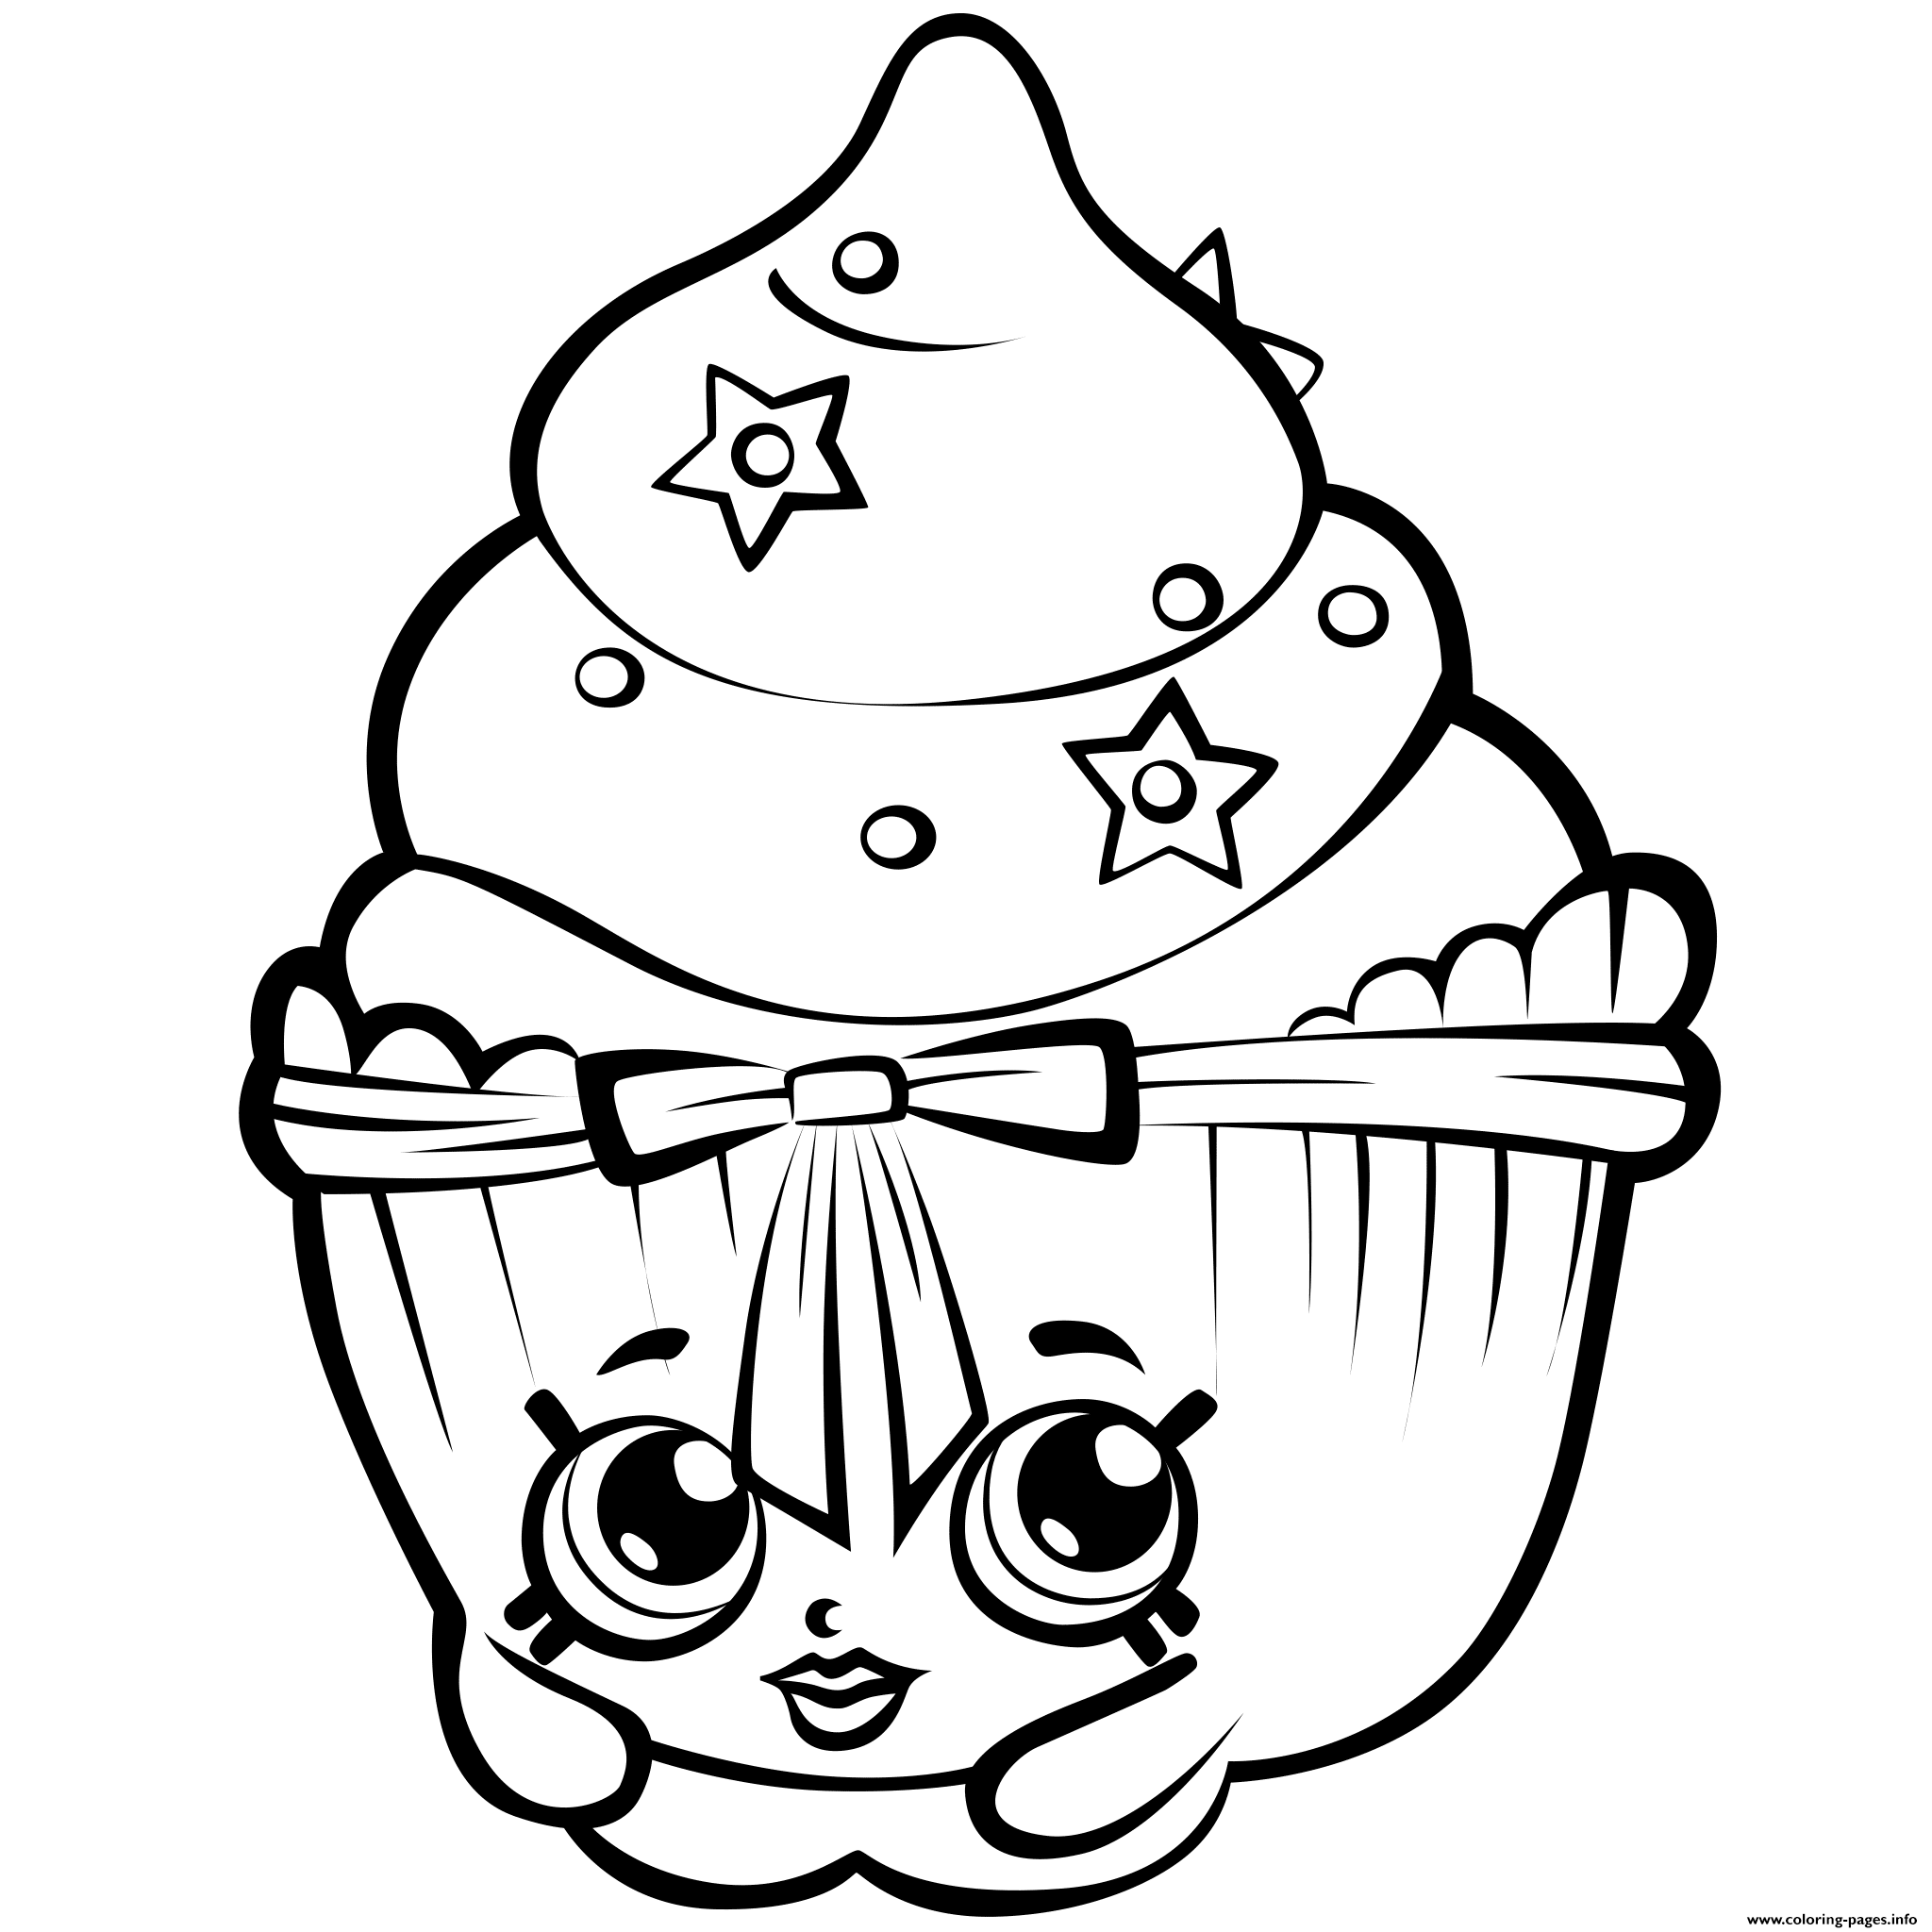 Shopkins coloring pages to print out - Print Season 3 Patty Cake Shopkins Season 3 Coloring Pages